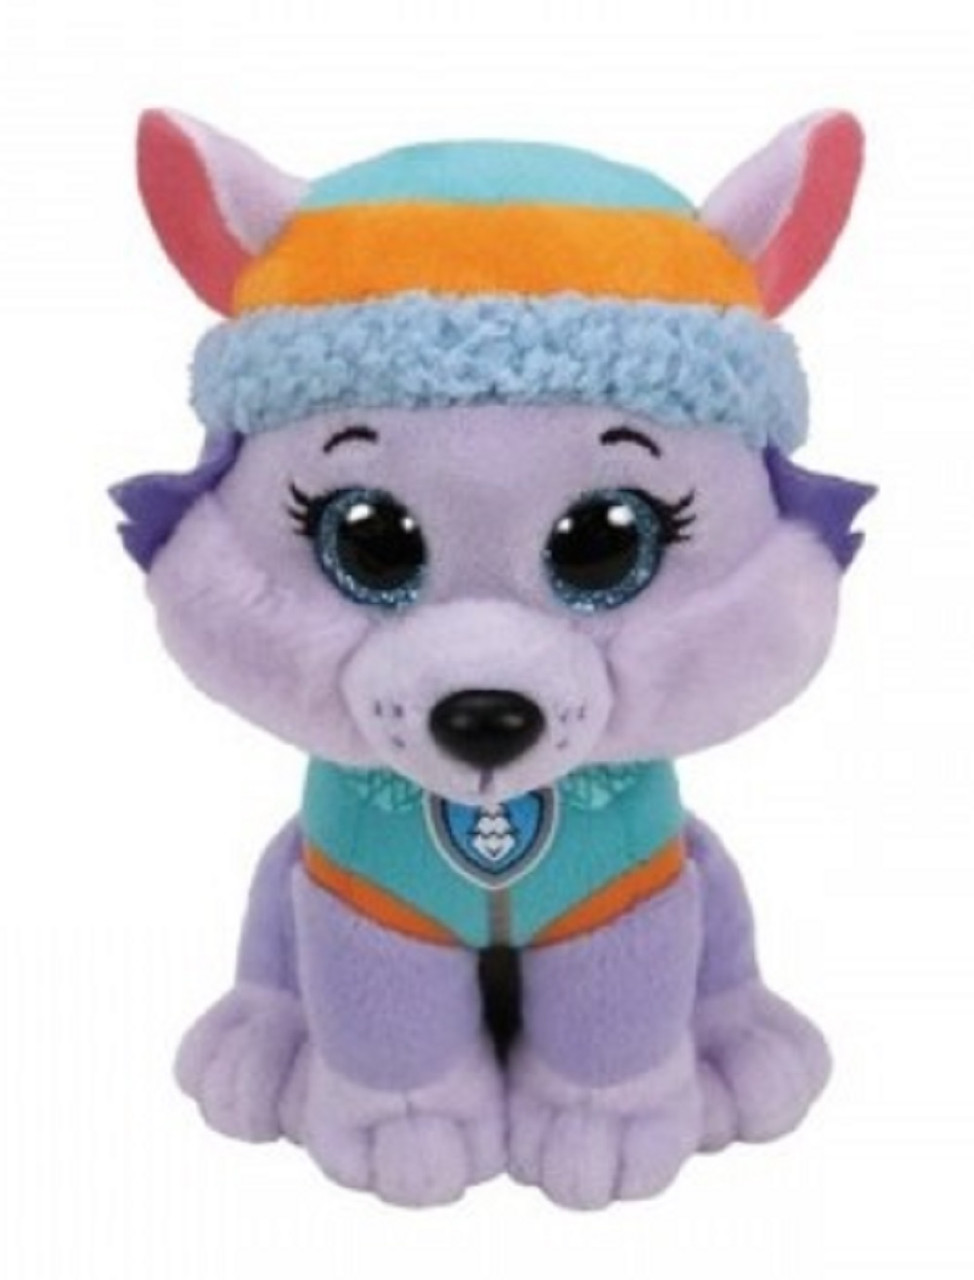 Plush Toy - Paw Patrol - Everest - Medium Size - Beanie Buddy